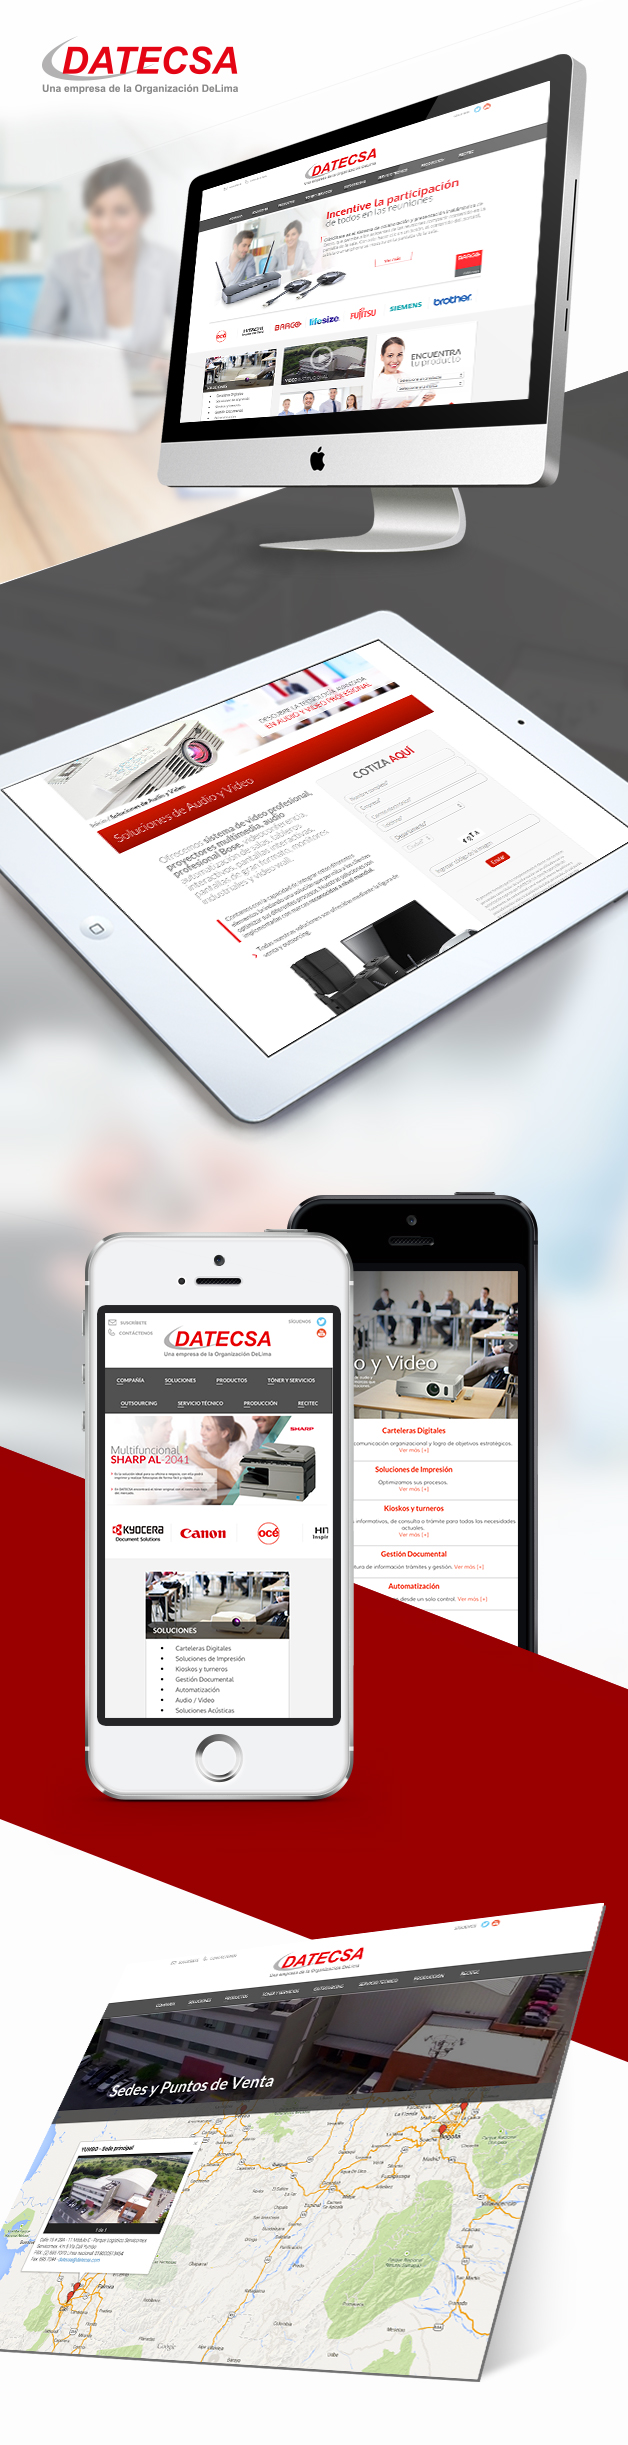 showcase-datecsa